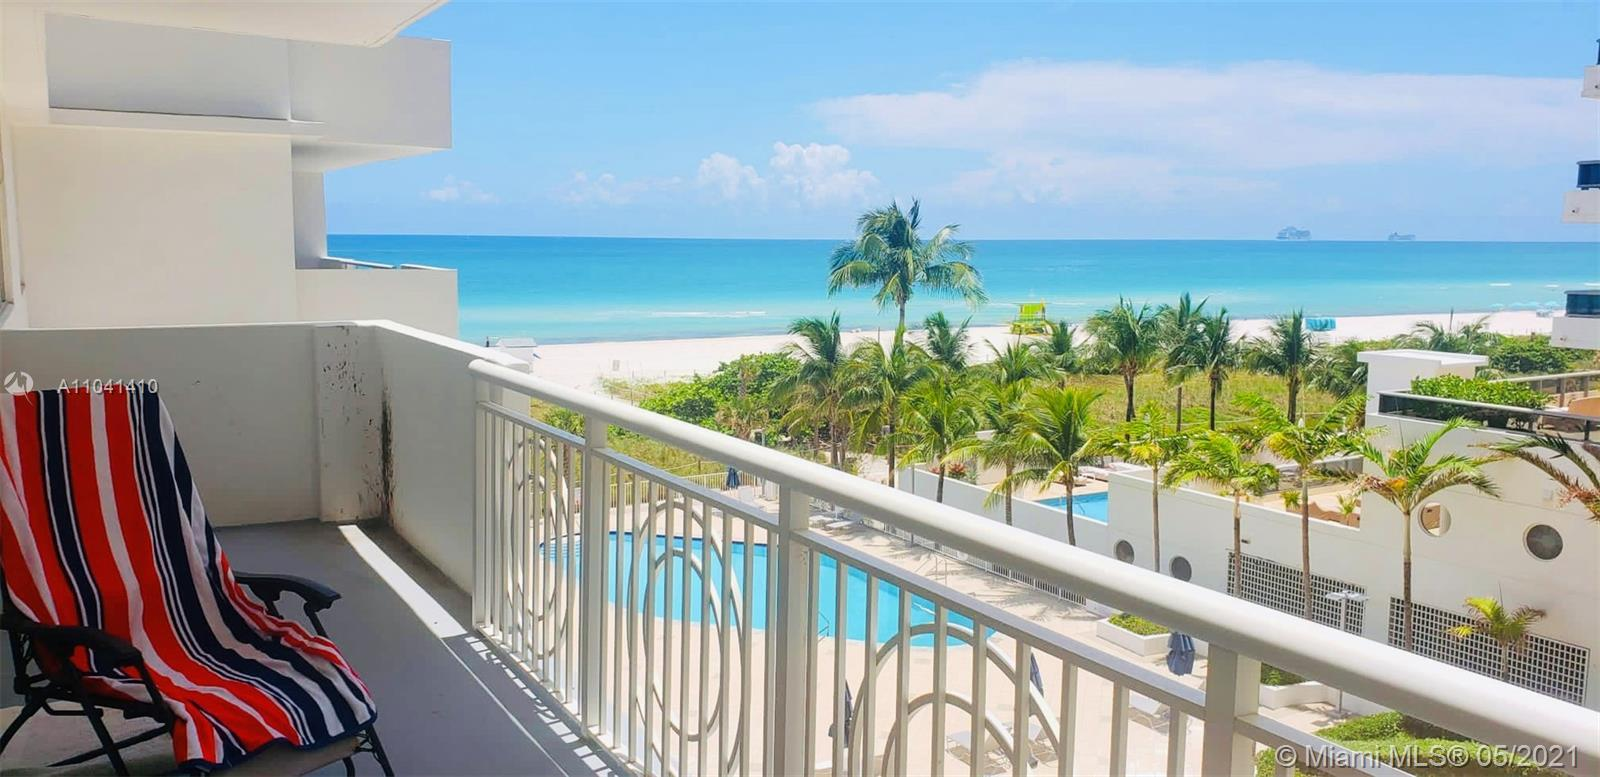 OCEAN VIEW. If you want to live in the heart of Miami Beach then this is the place to be. Beautiful